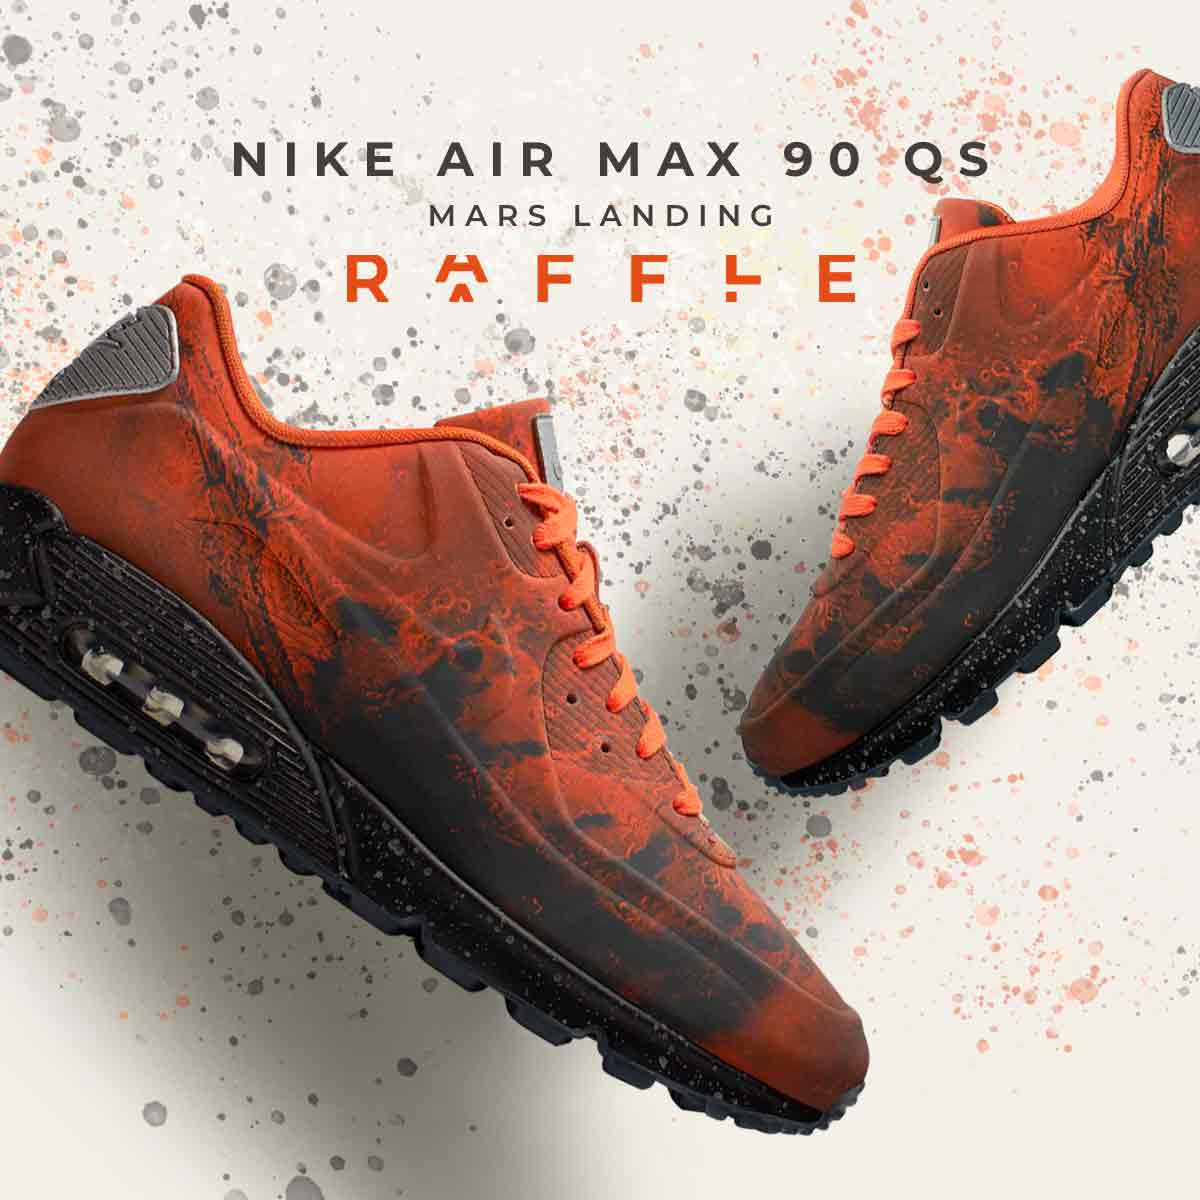 Take Your Feet To Mars With Nike's Air Max 90 'Mars Landing